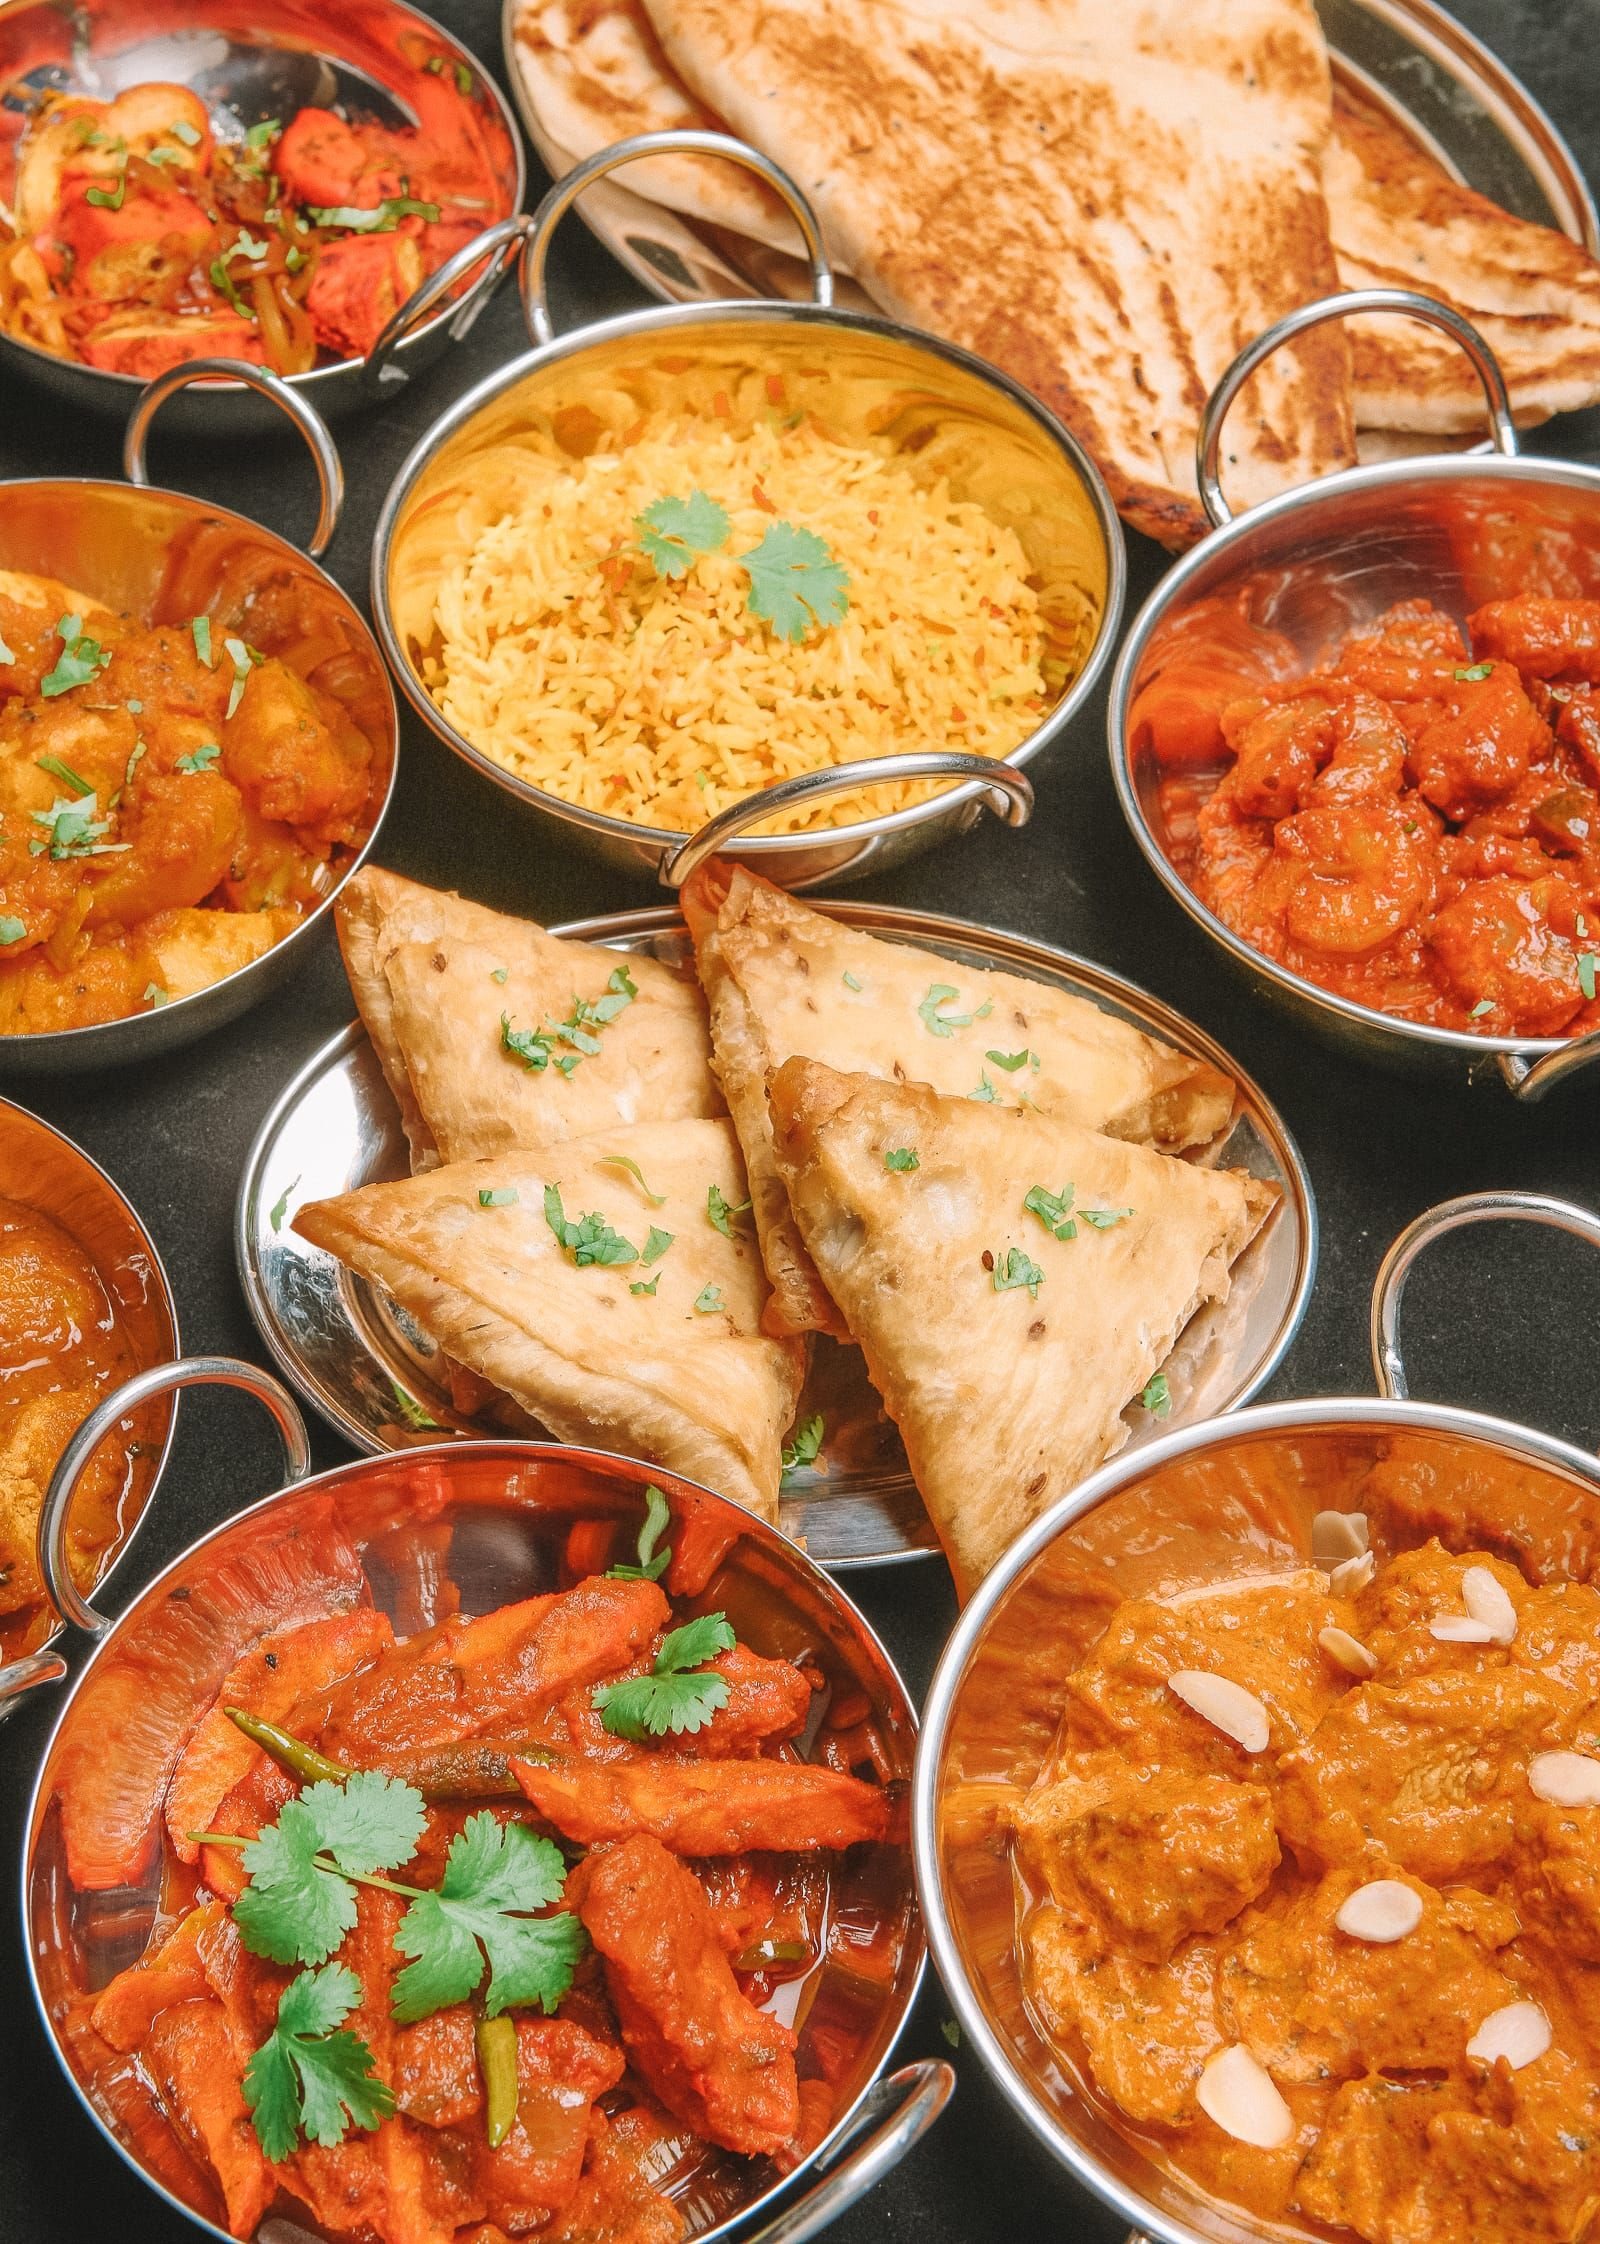 most popular food in india